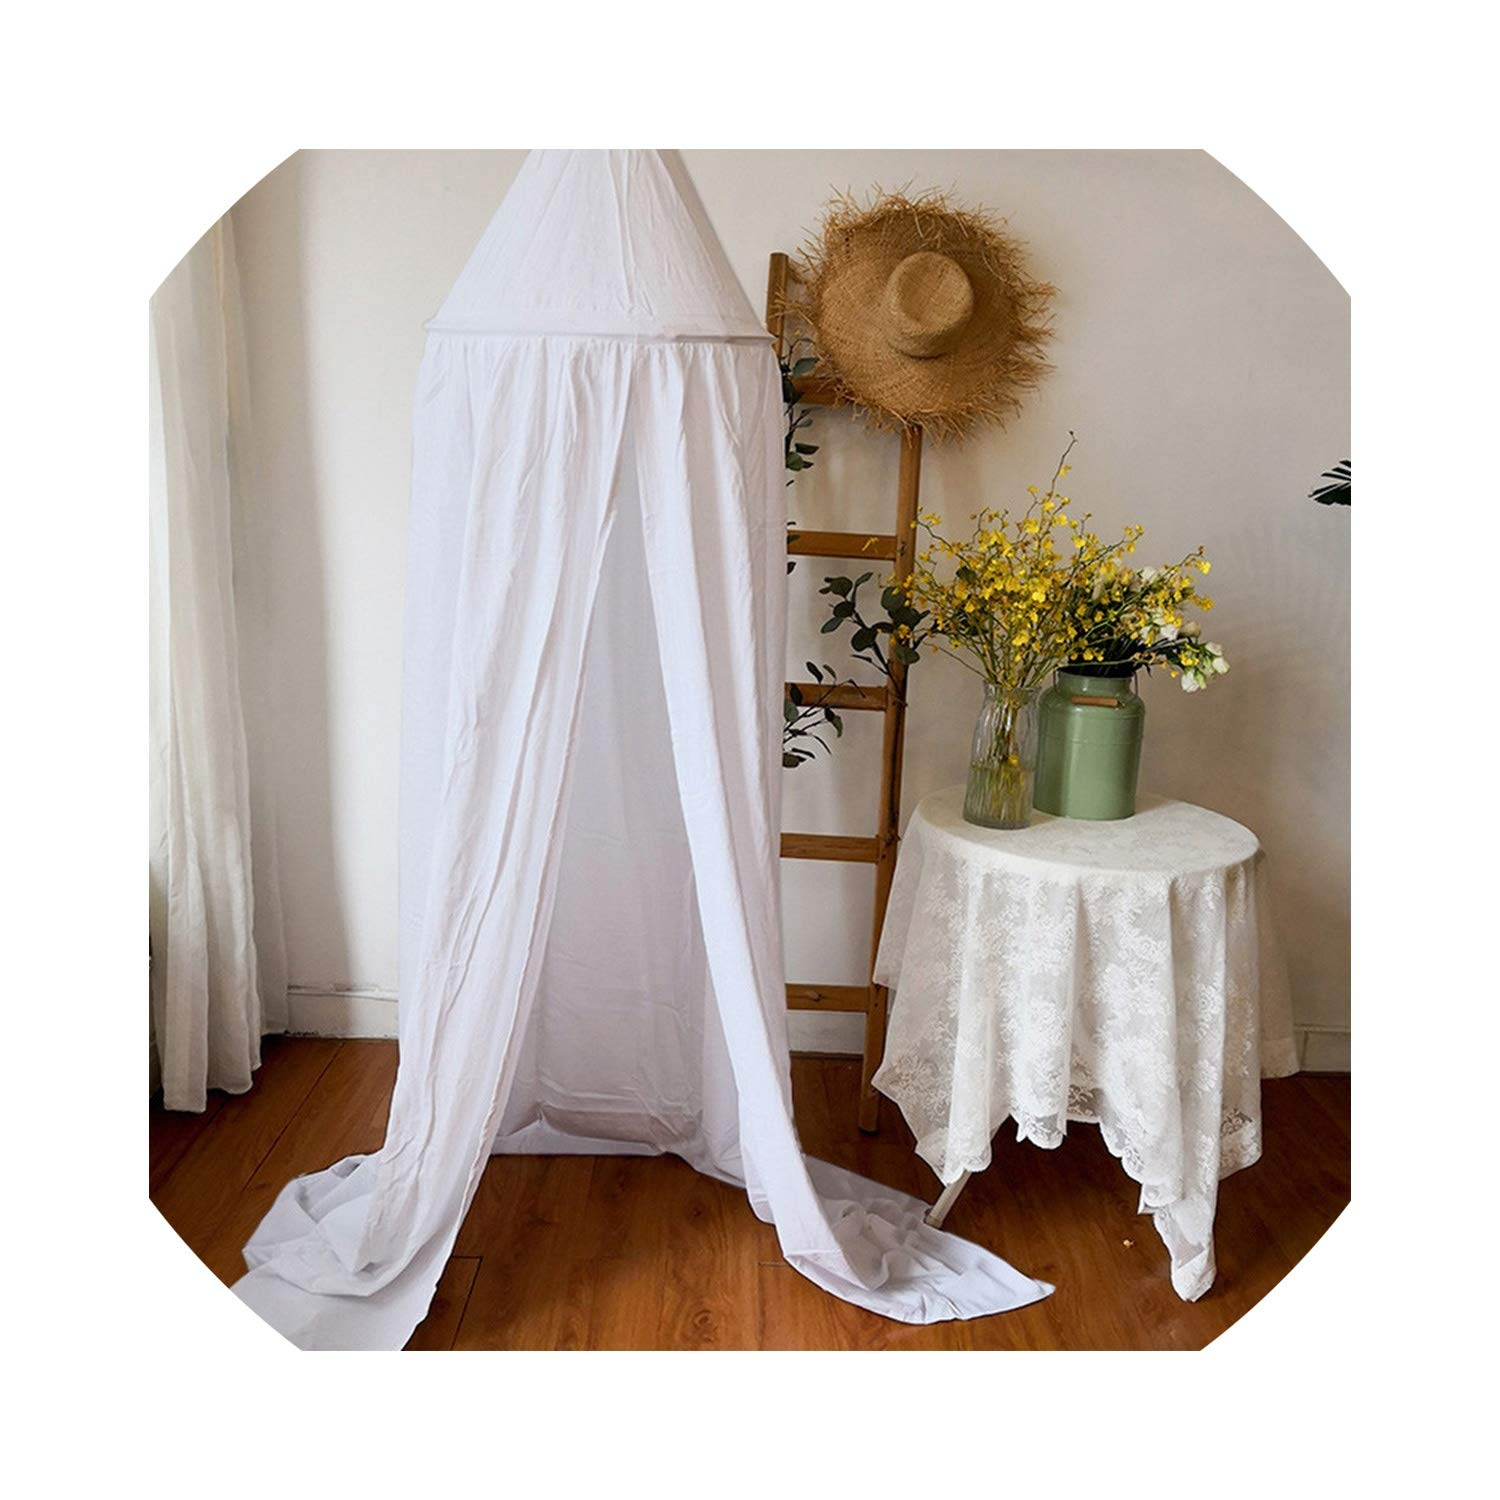 Baby Bed Canopy Bedcover Round Mosquito Net Curtain Modern Simple Home Textile Living New Patterns,WH by Alovelycloud bed curtain (Image #1)